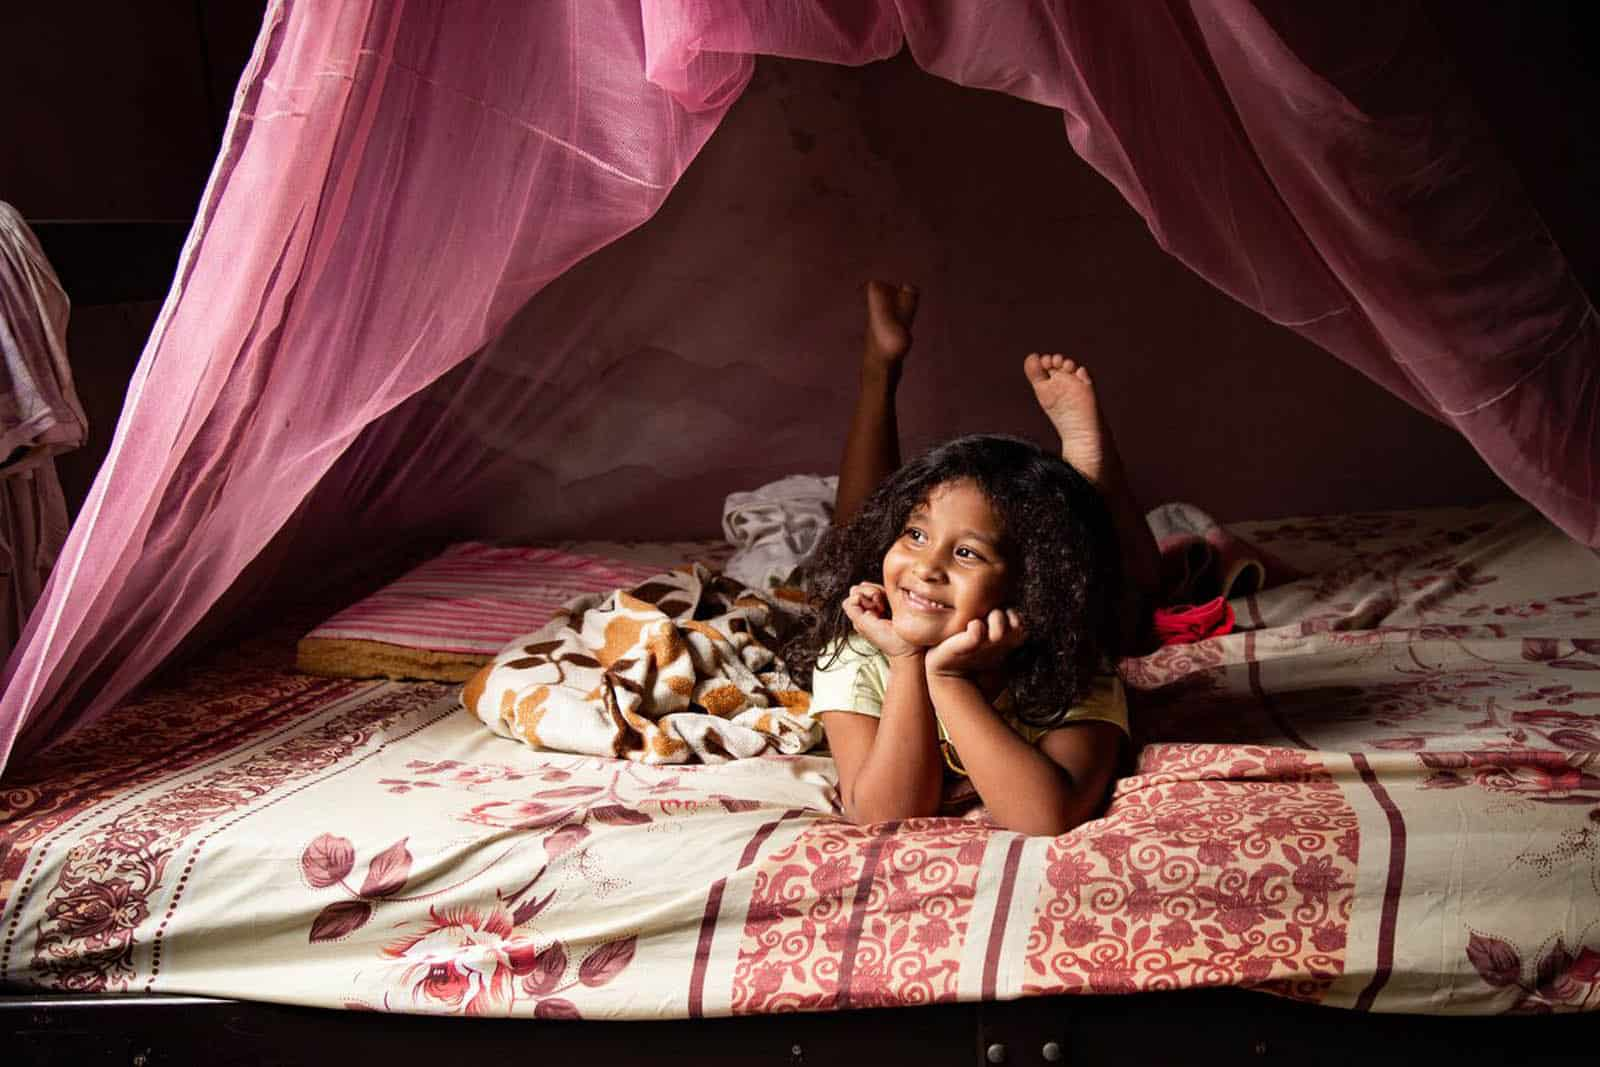 The Day 6-Year-Old Sophia Learned to Dream Without Limits